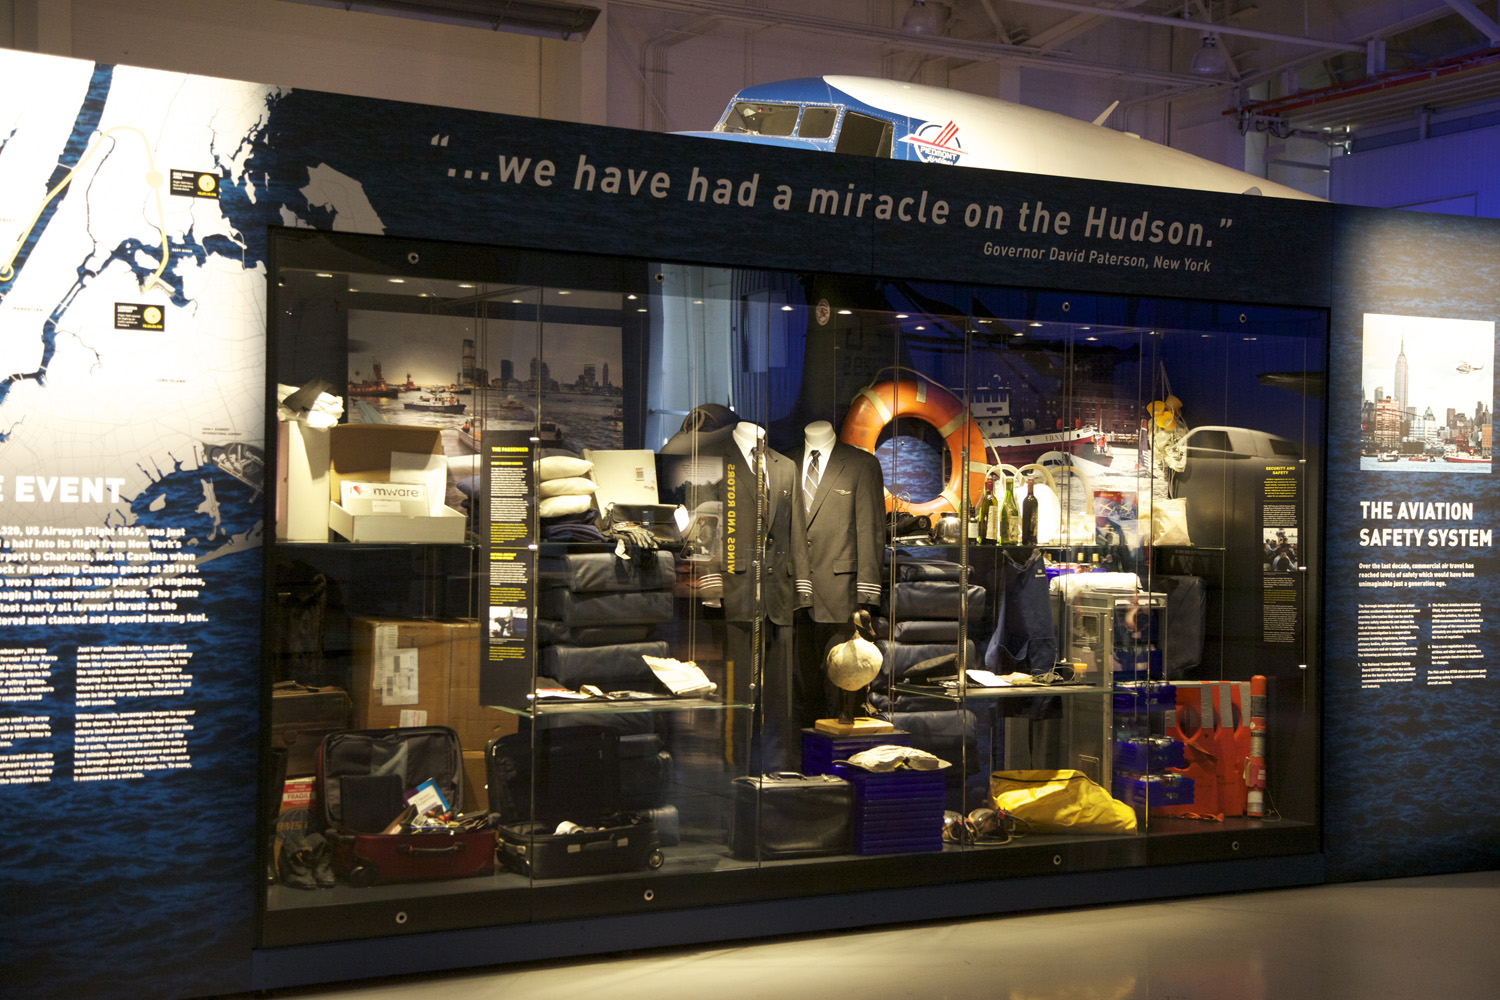 Encountering 'The Miracle on the Hudson', visitors are invited to engage with the iconic aircraft wreck and experience the dramatic story for themselves. This is achieved through touchscreen interactives, interpretive graphic panels, artefact displays and audio testimonies from passengers on board the flight.